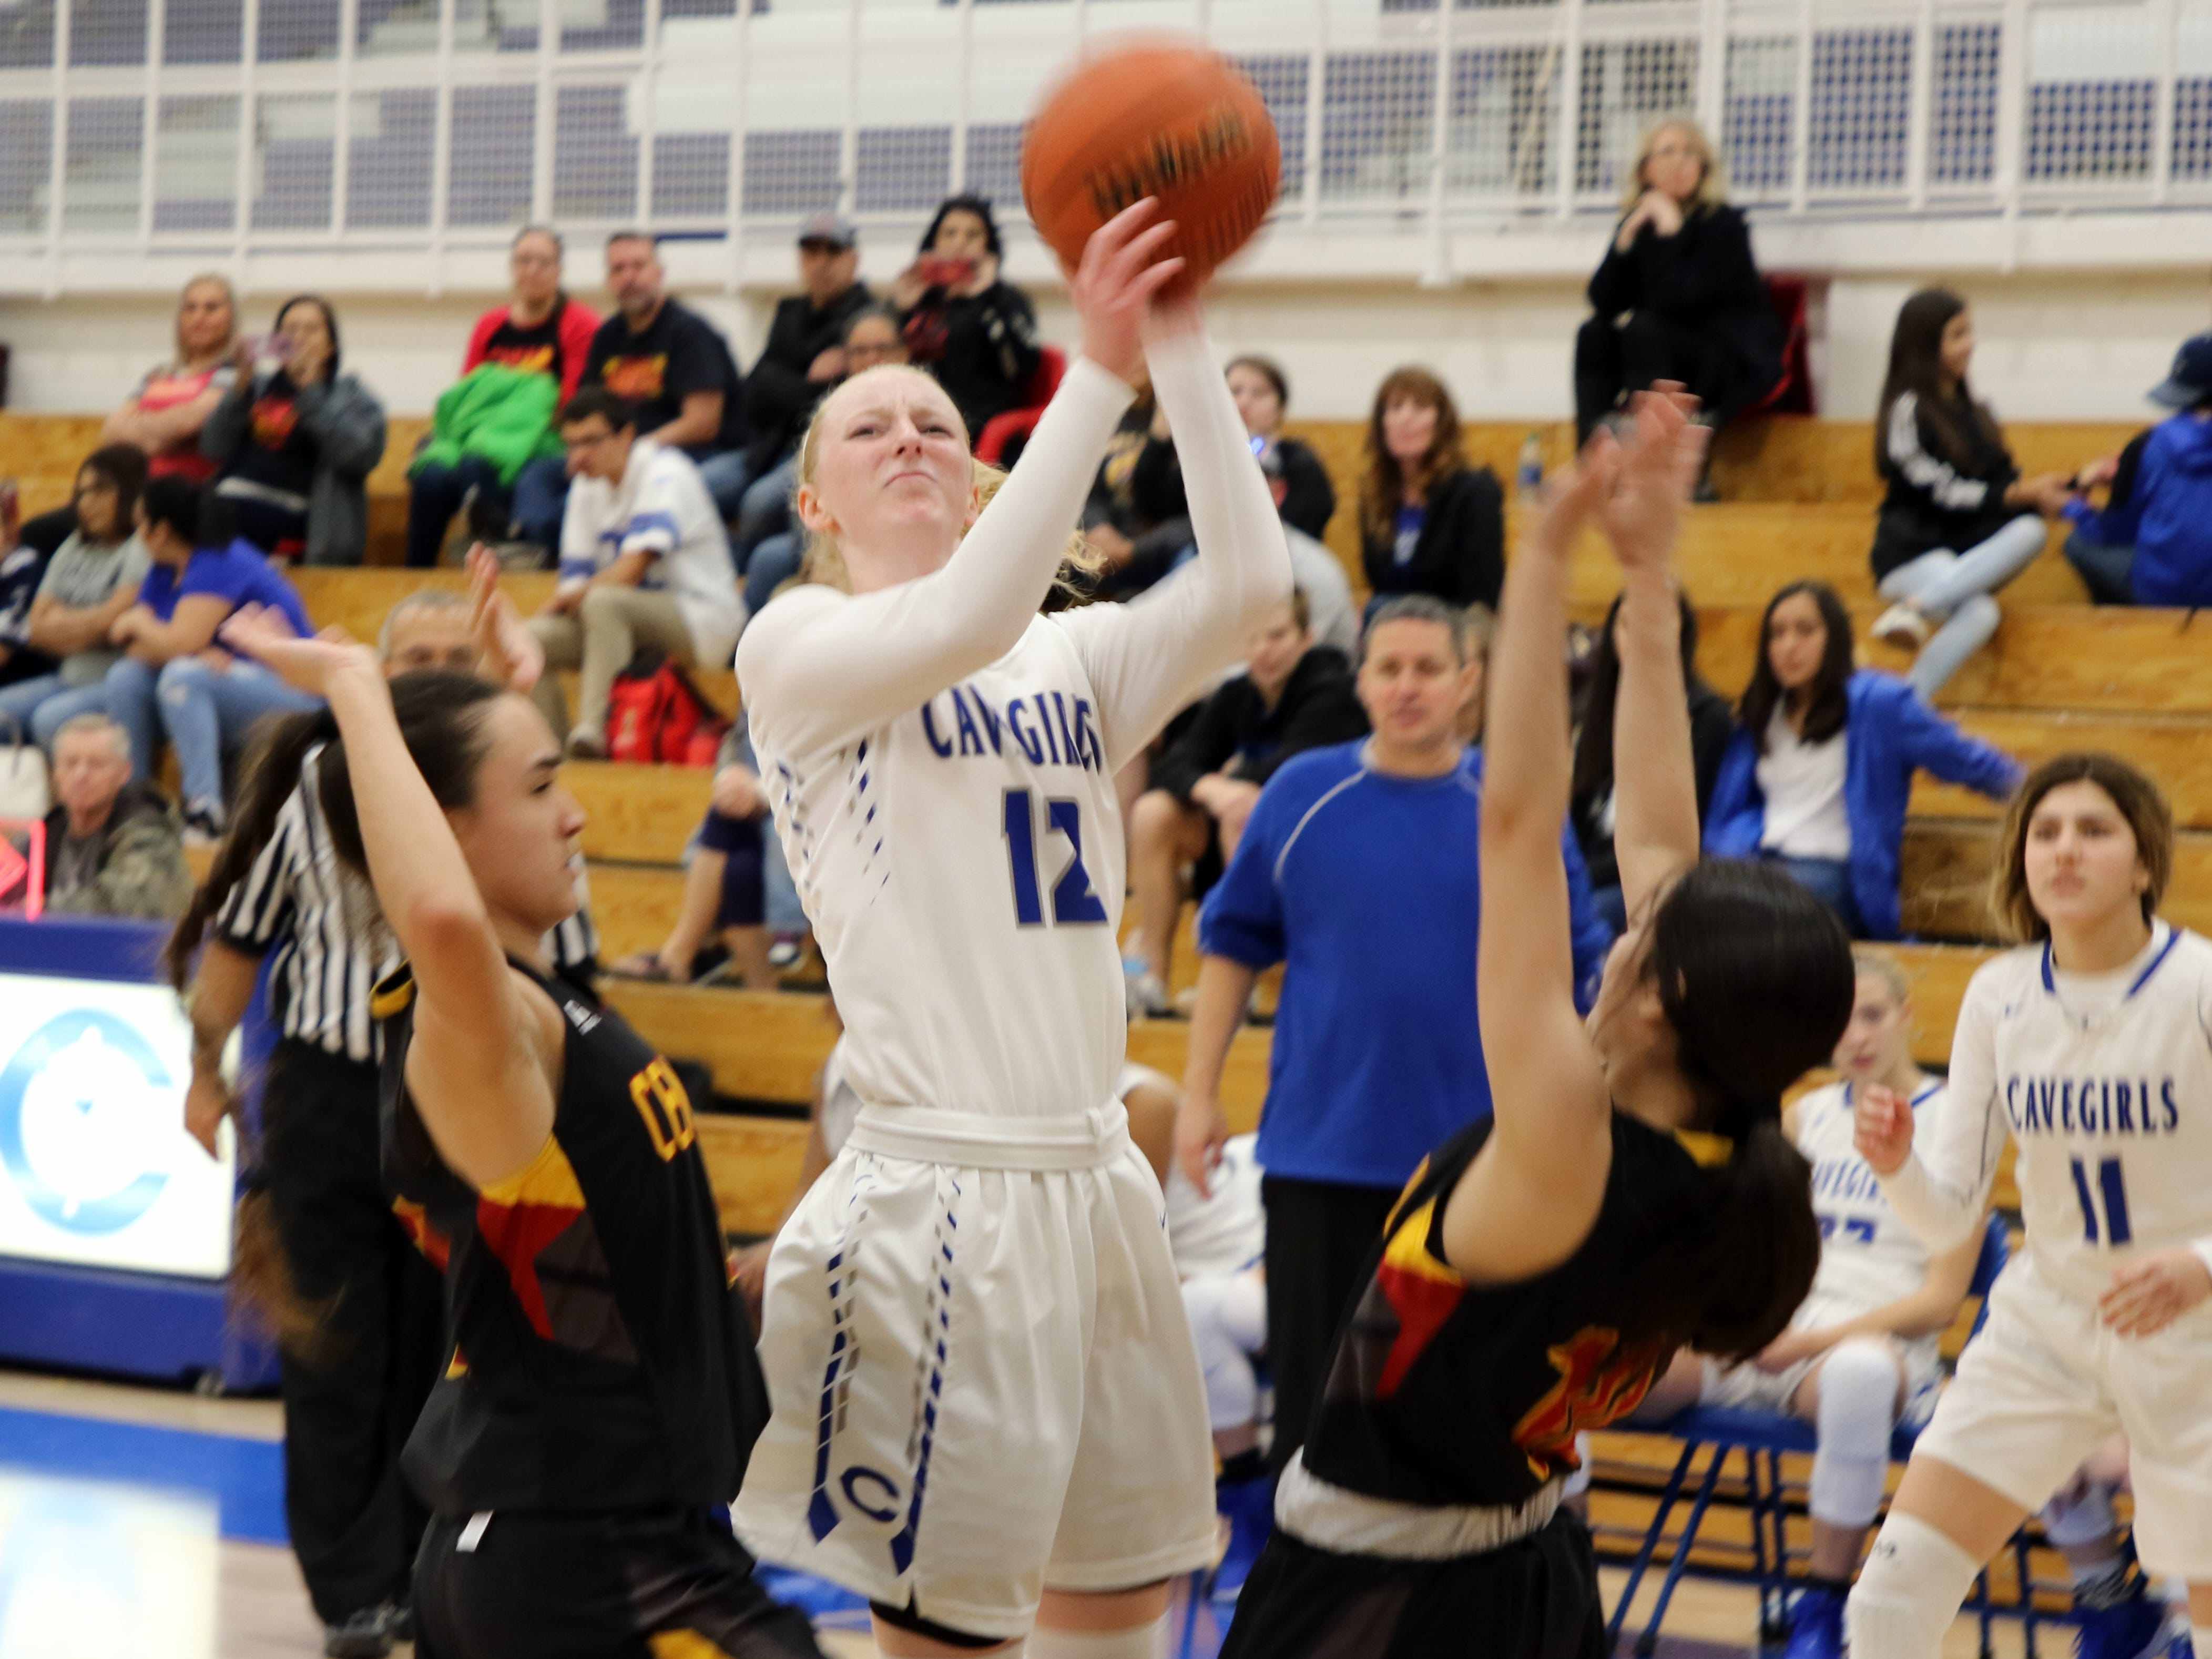 Carsyn Boswell drives the lane against Centennial on Saturday. She finished with 24 points.